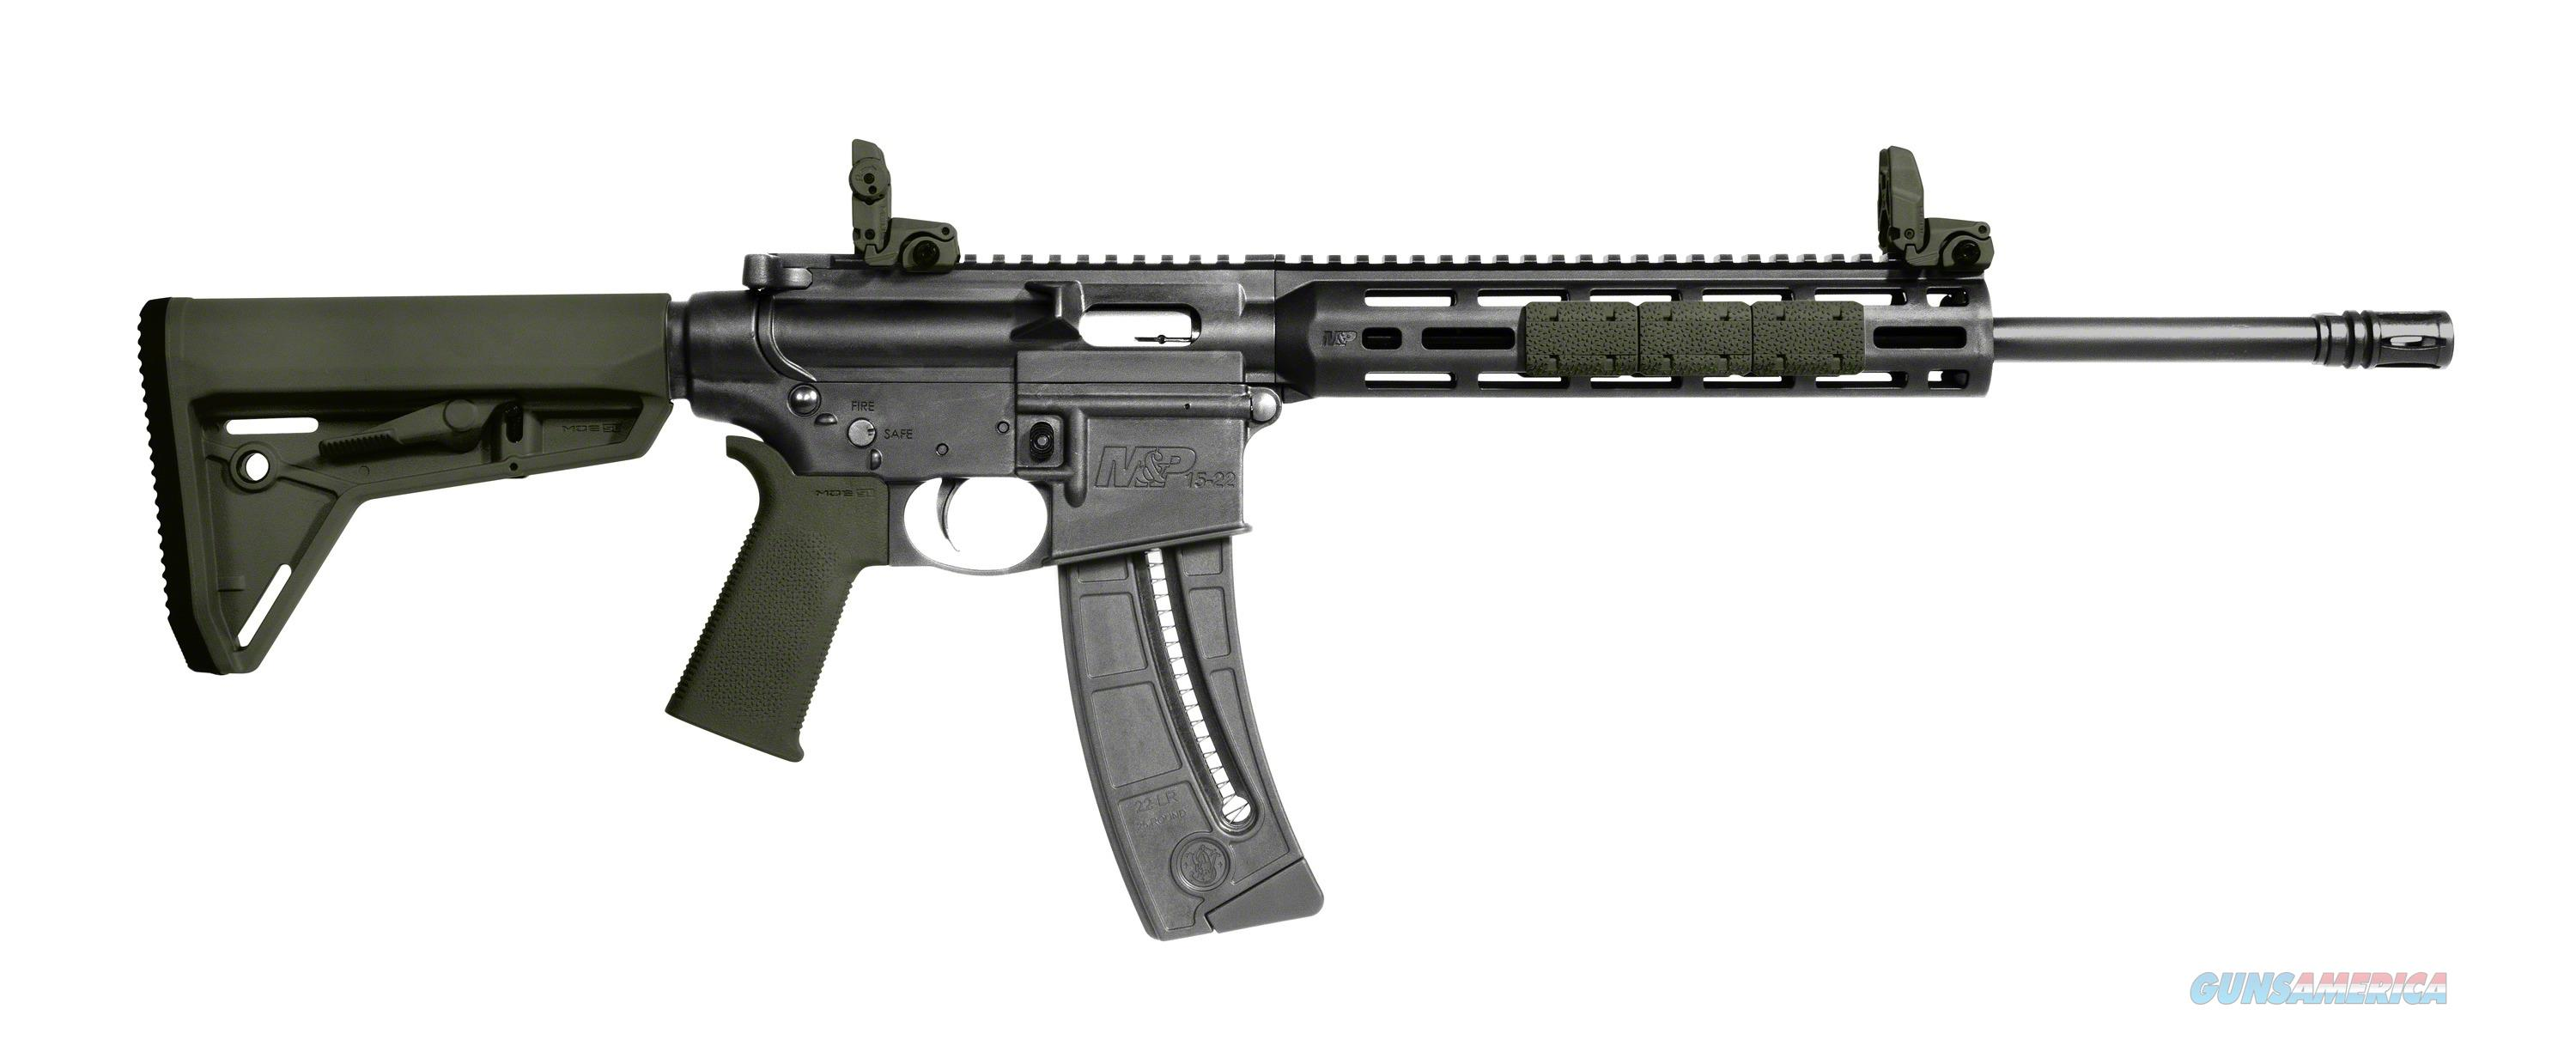 "Smith & Wesson M&P 15-22 Sport 16.5"" 22Lr Moe Sl - Od Green 25 Round Mag 11913  Guns > Rifles > S Misc Rifles"